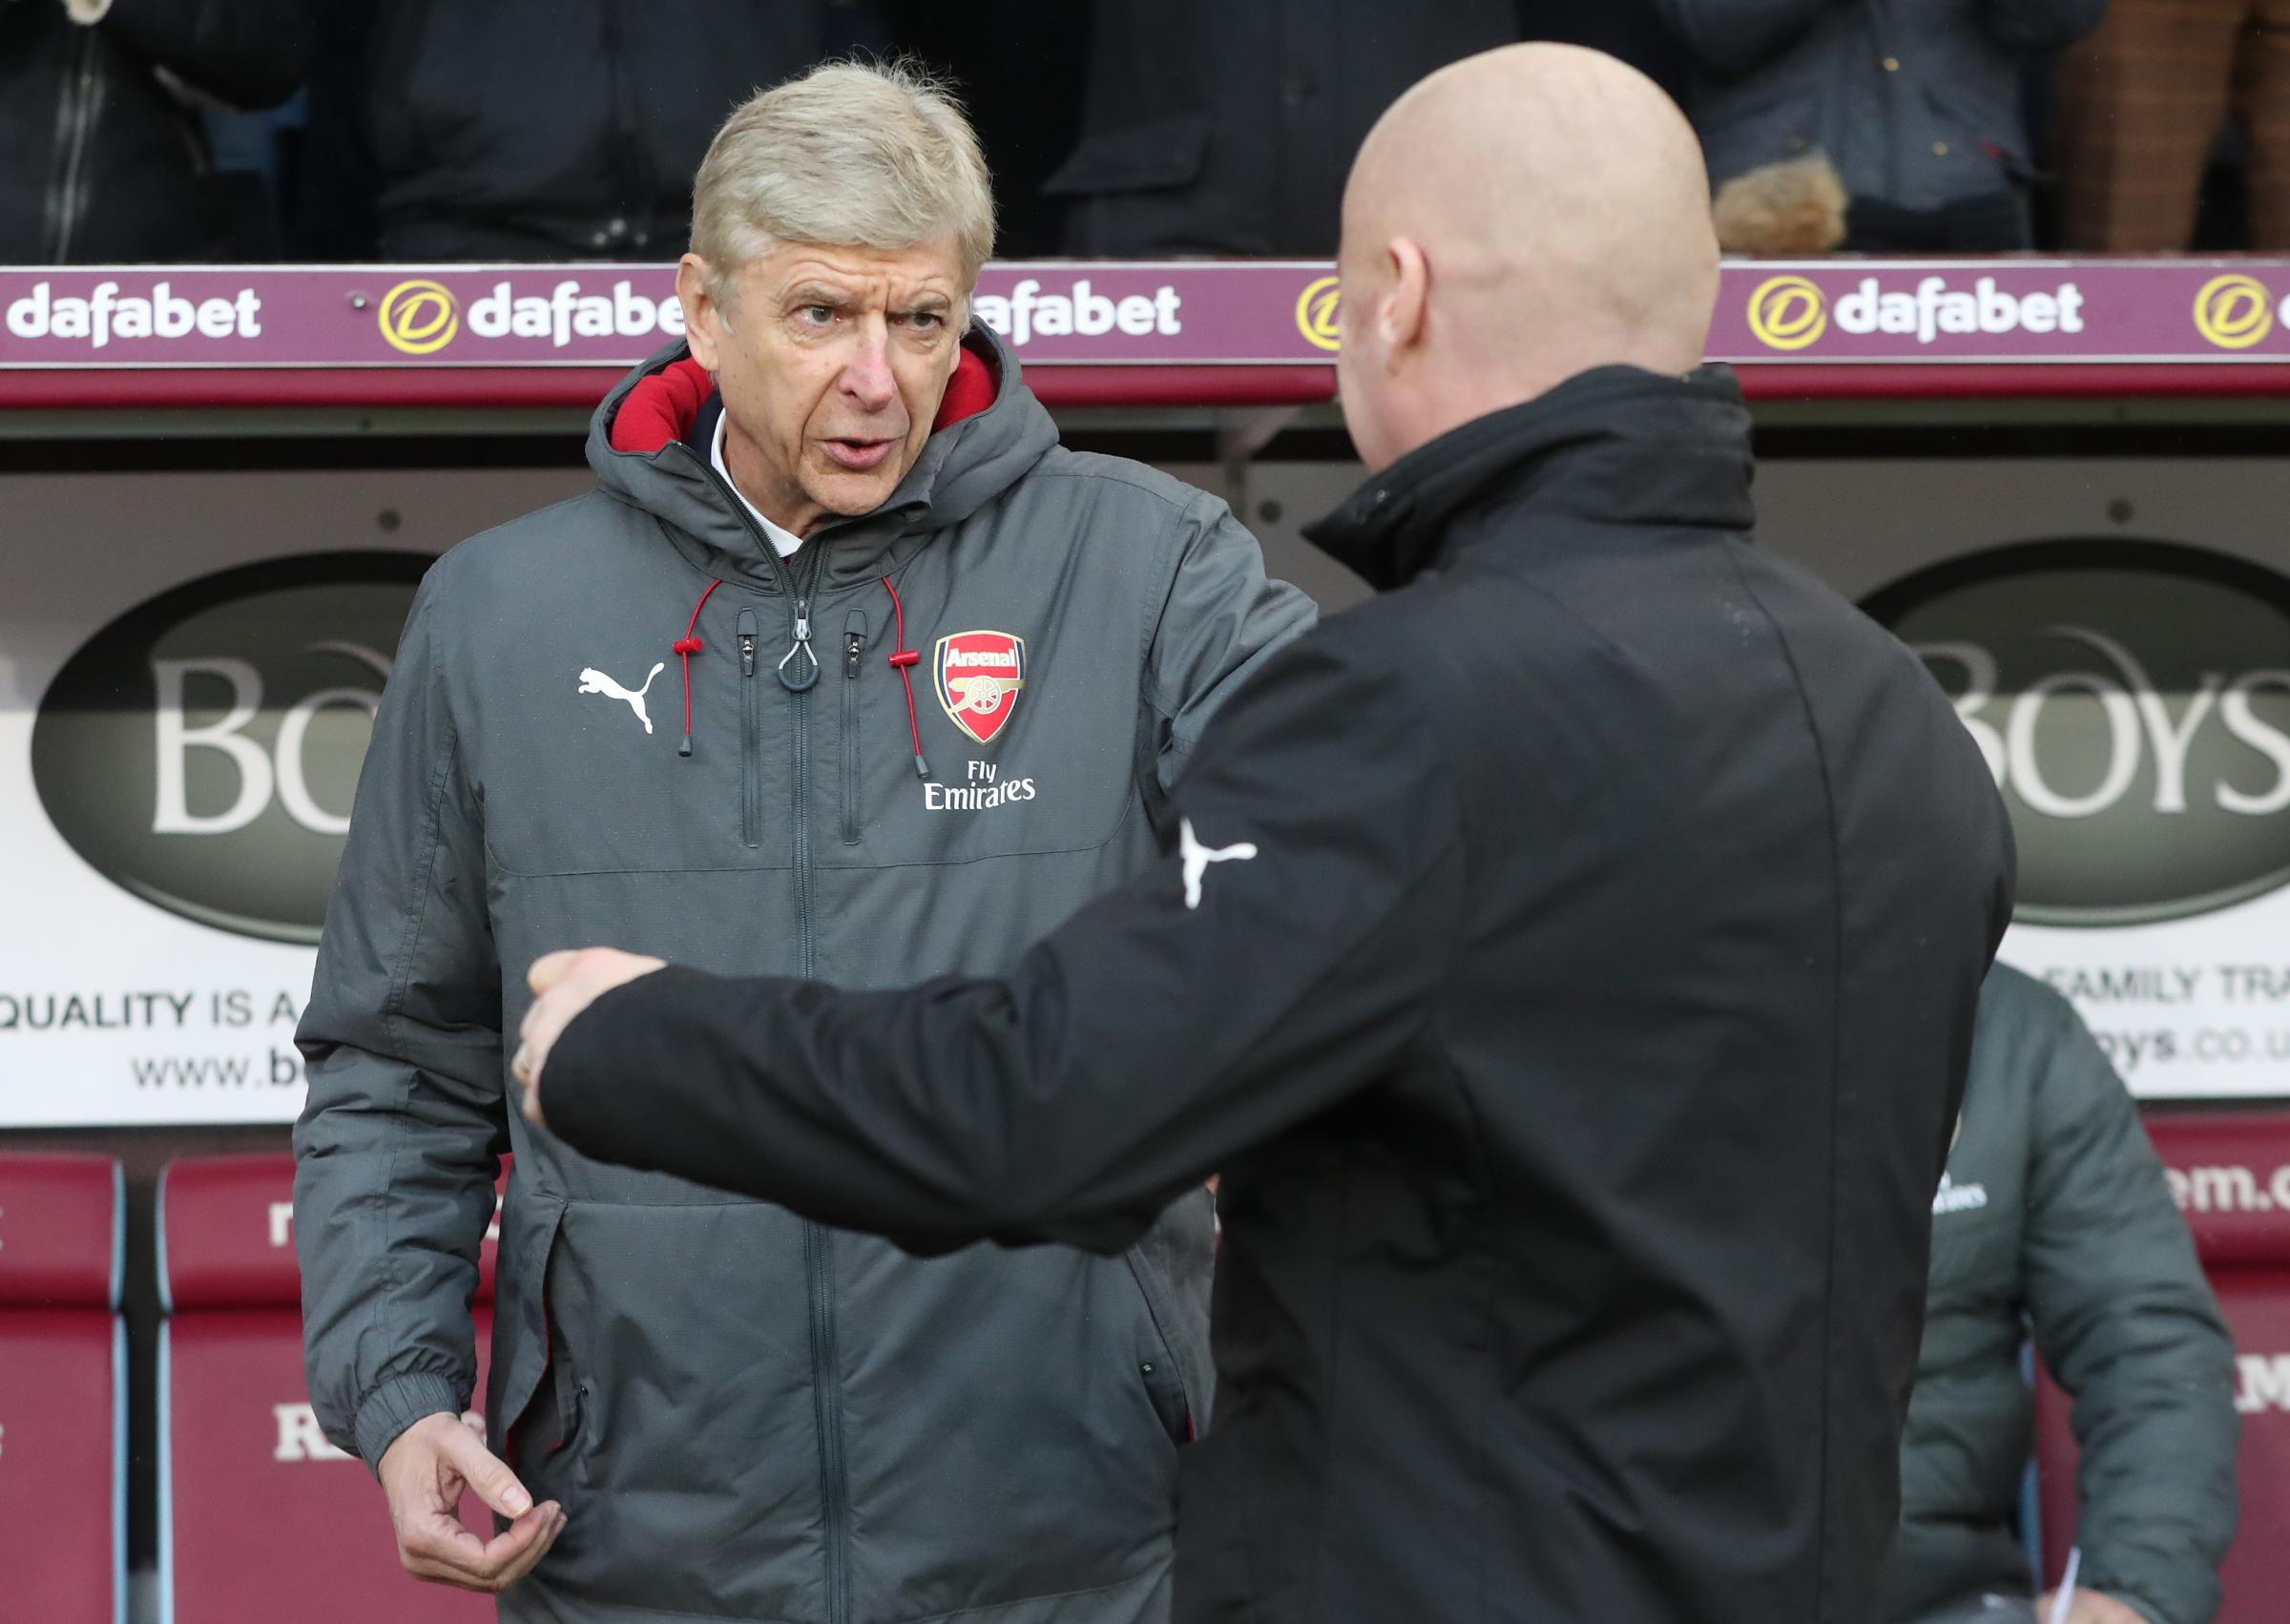 Sean Dyche has paid tribute to 'legend' Arsene Wenger